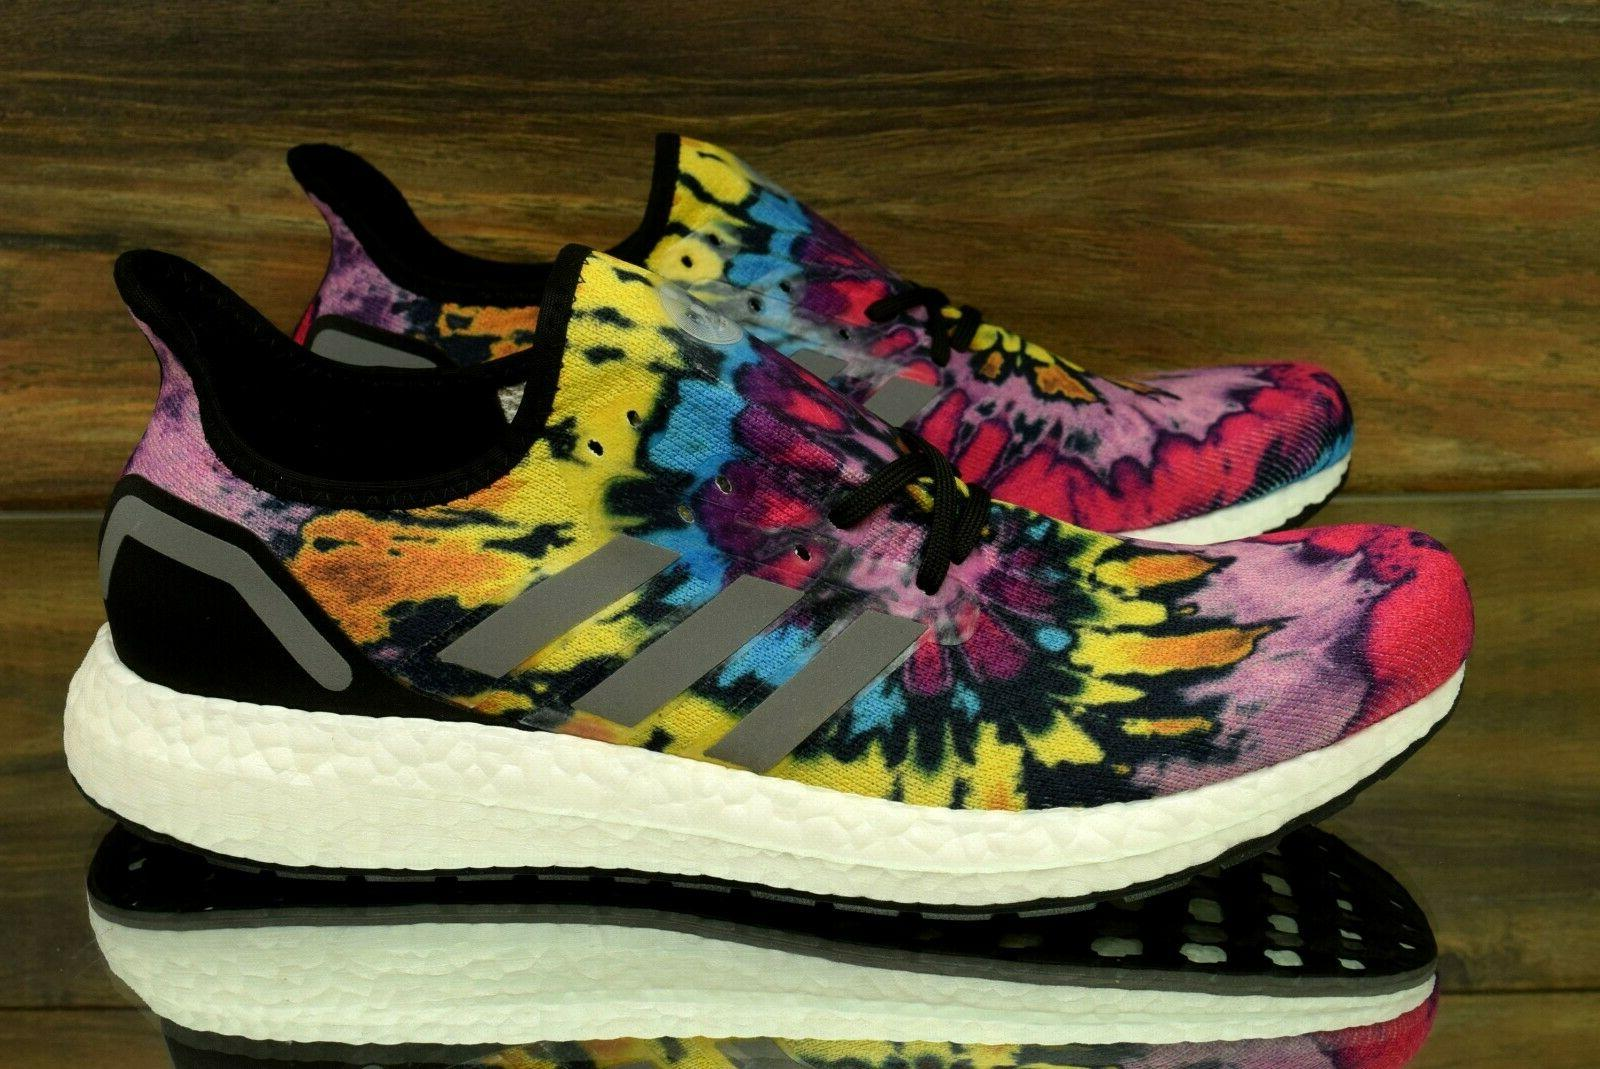 Adidas EH1282 Shoes $200